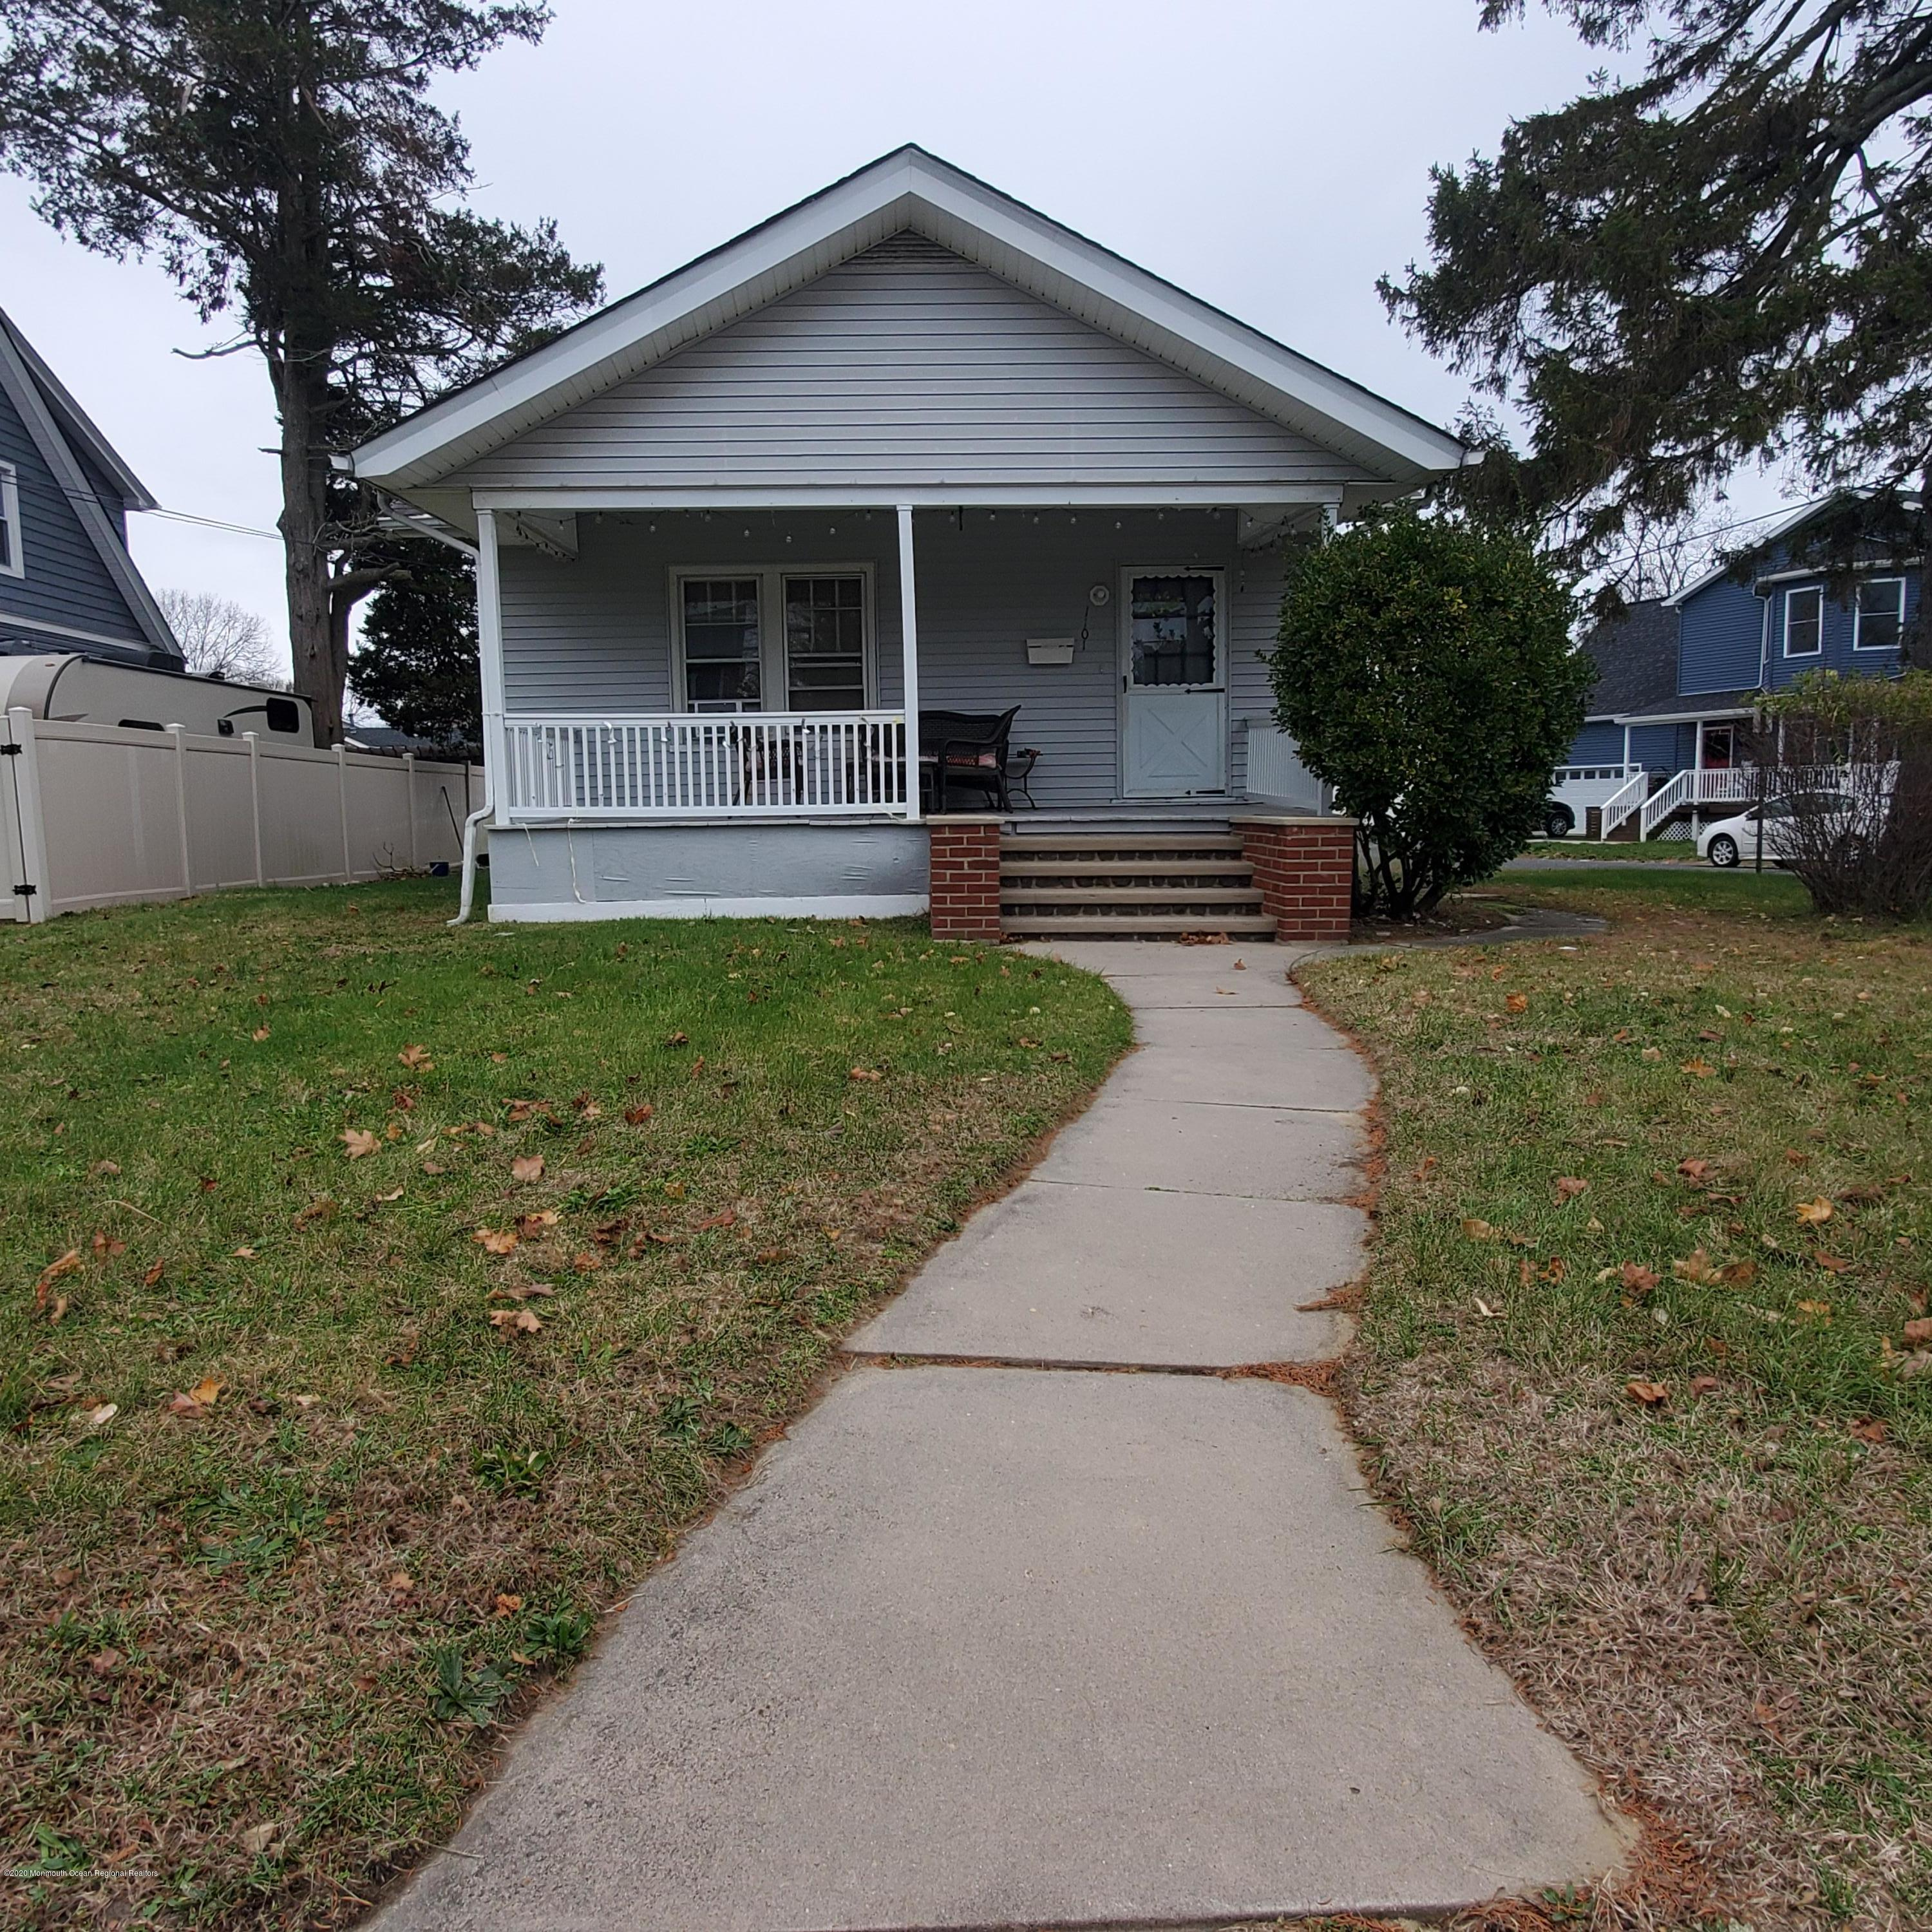 1101 Arnold Avenue, Point Pleasant, New Jersey 08742, 3 Bedrooms Bedrooms, ,1 BathroomBathrooms,Single Family,For Sale,1101 Arnold Avenue,1,22042539